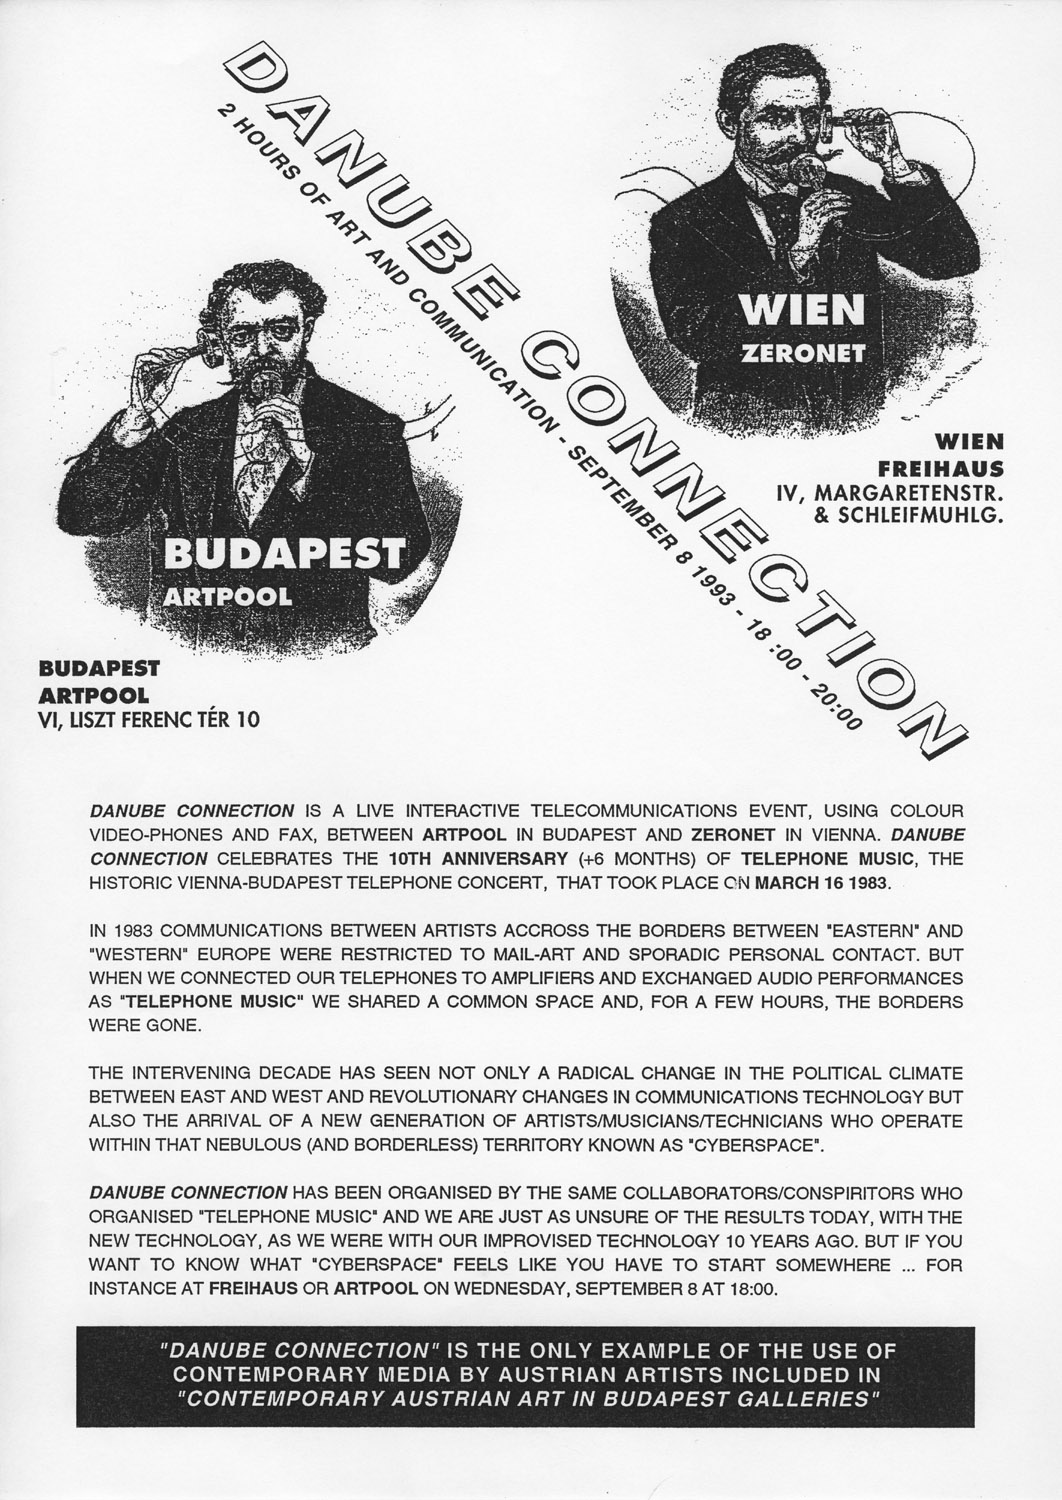 Press release by Zeronet for Danube Connection, 1993